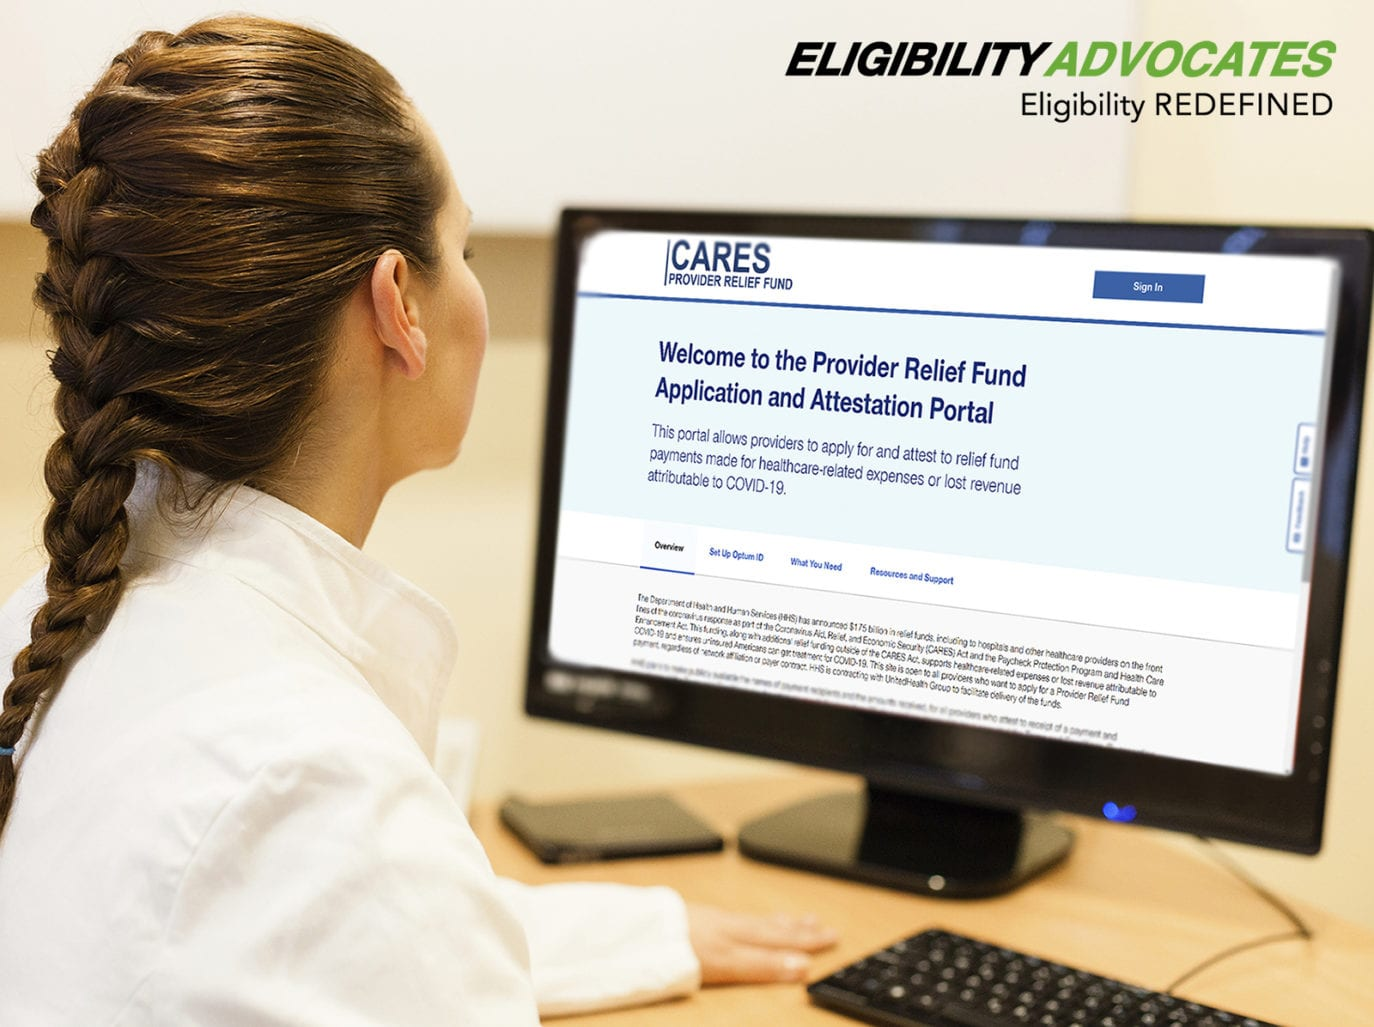 A provider looks at the CARES Act Provider Relief Fund Application and Attestation Portal on her desktop computer.